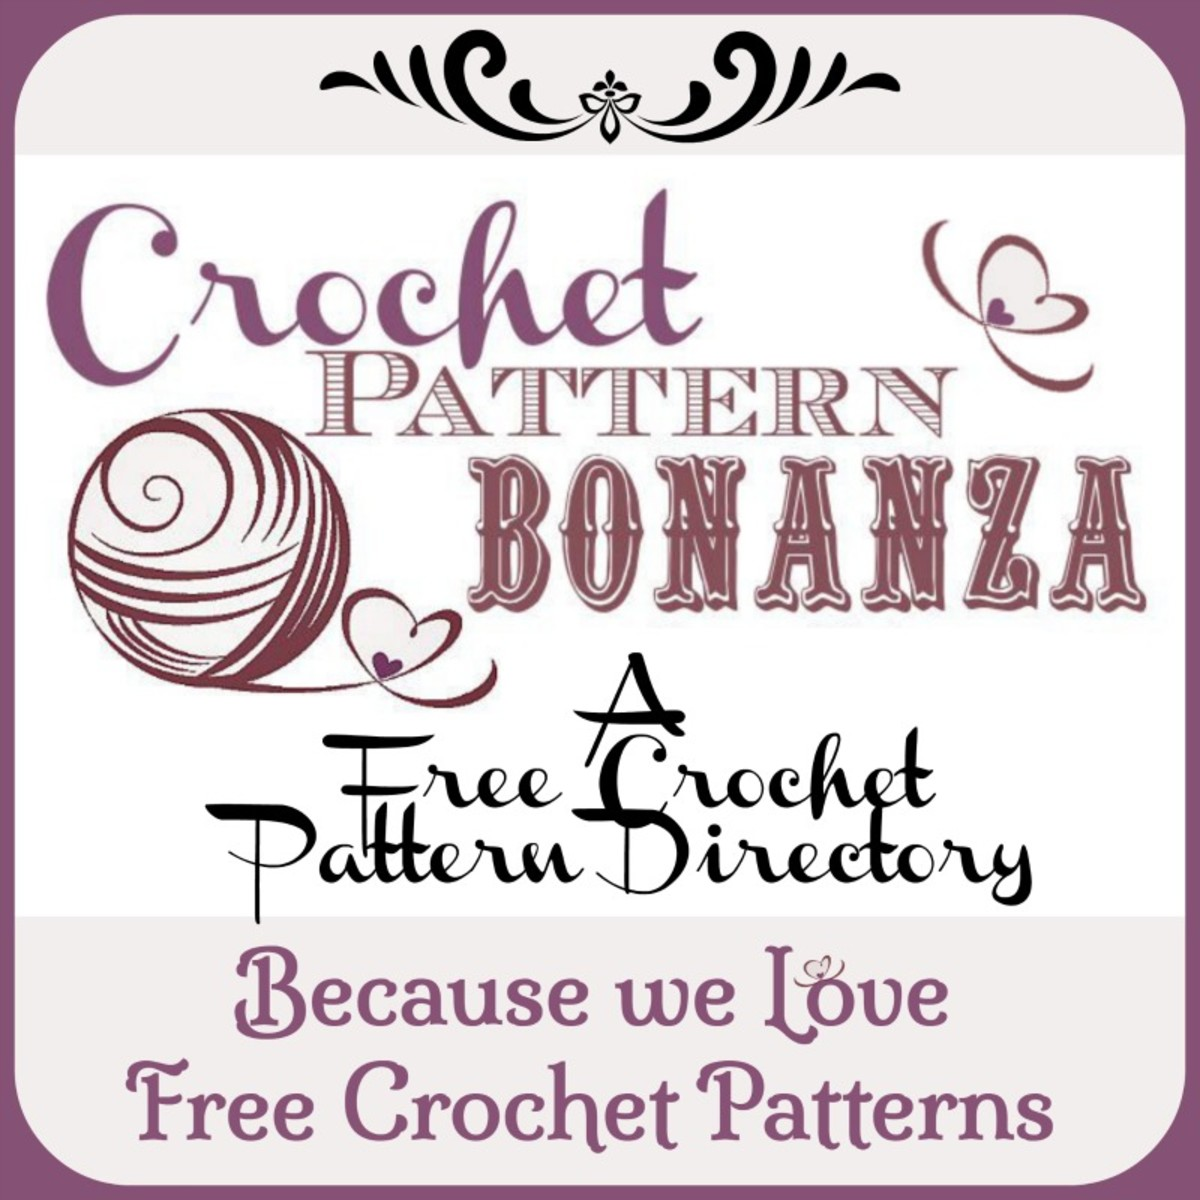 For More FREE Crochet Patterns visit Crochet Pattern Bonanza: http://crochetpatternbonanza.com/